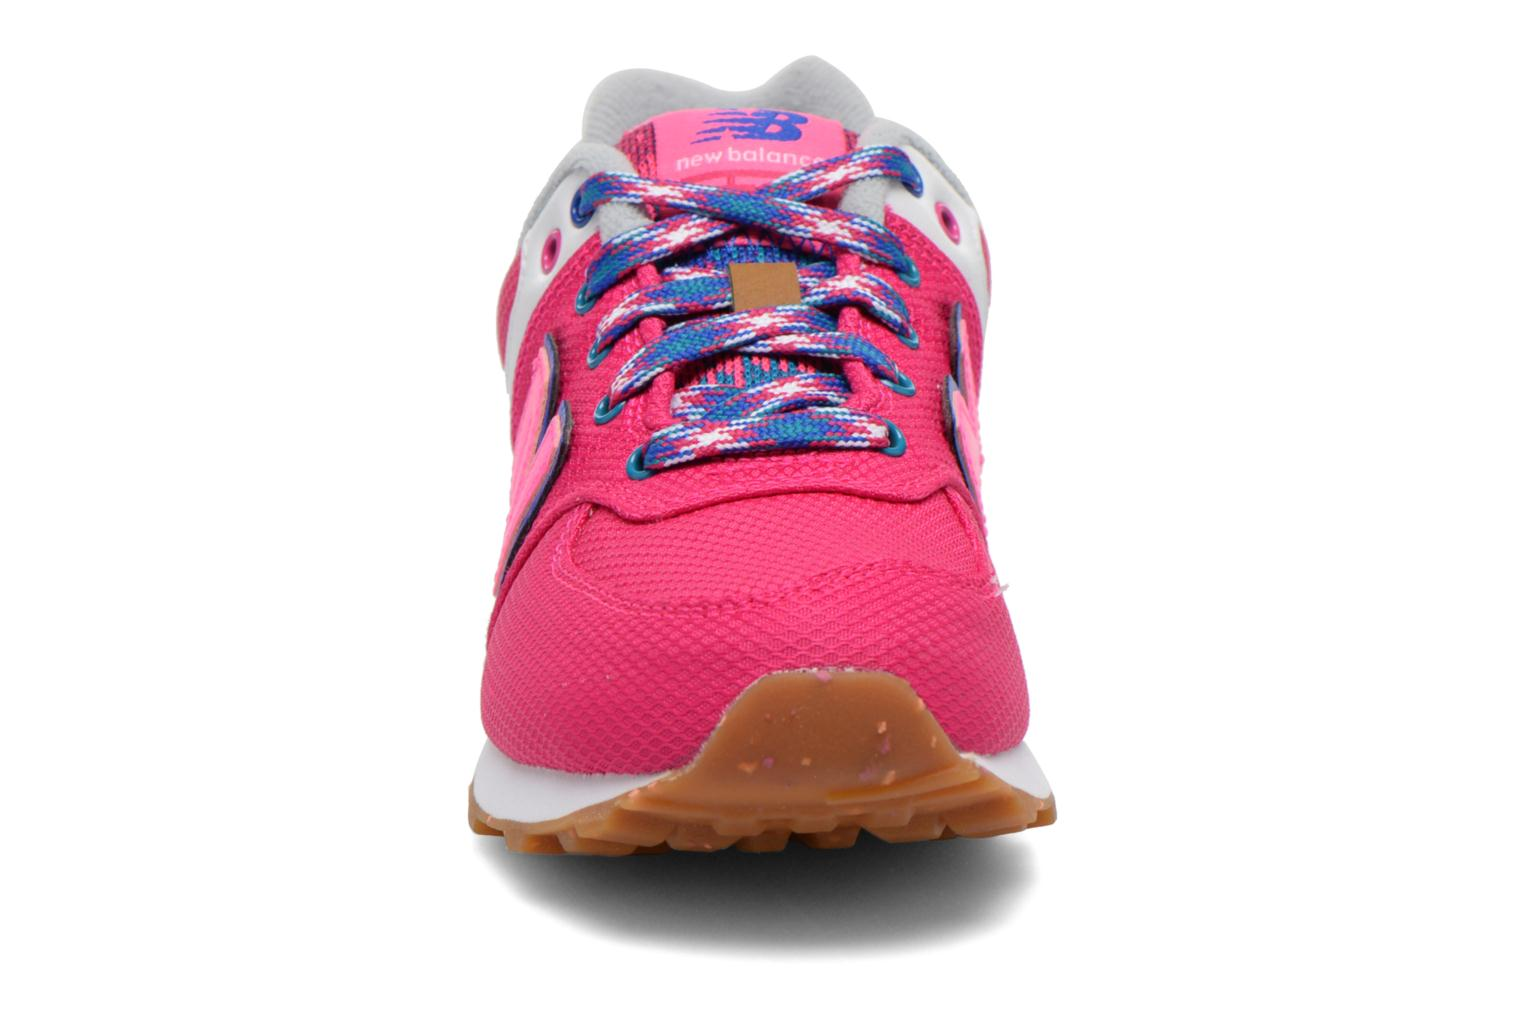 CZP Pink/White New Balance KL574 J (Rose)